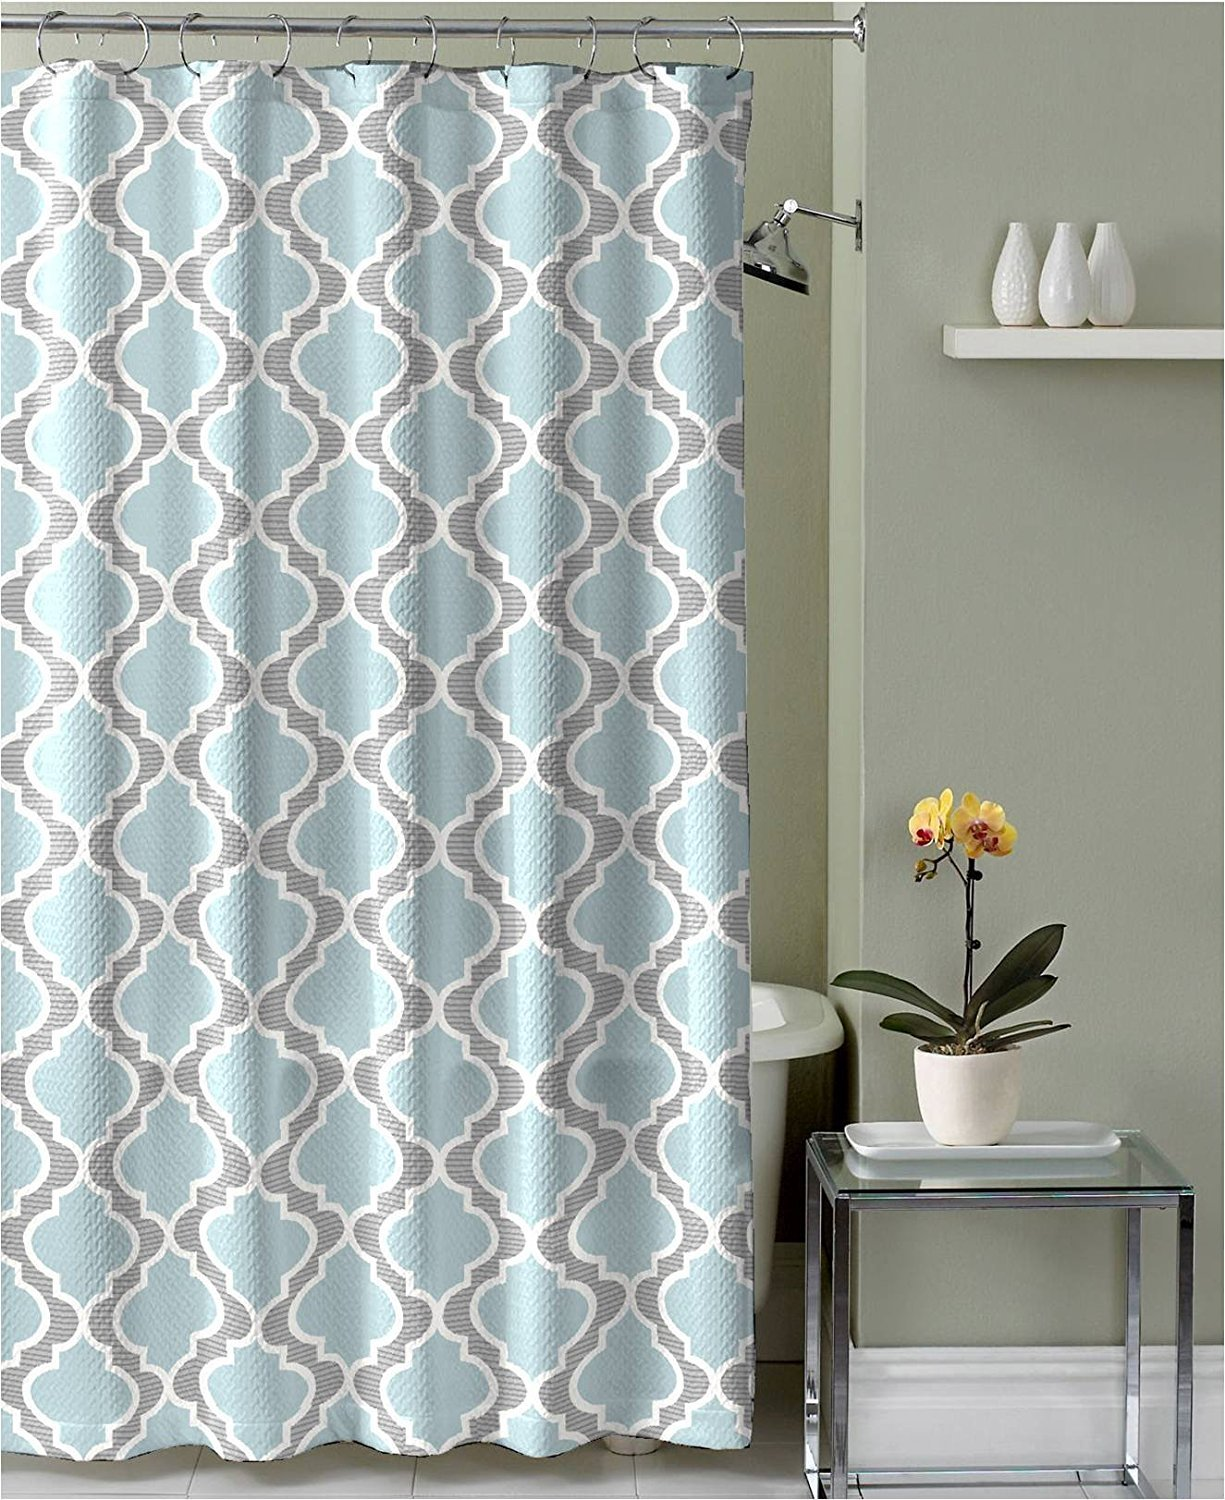 Gray and blue shower curtain - Amazon Com Light Aqua Grey White Embossed Fabric Shower Curtain Moroccan Design Home Kitchen